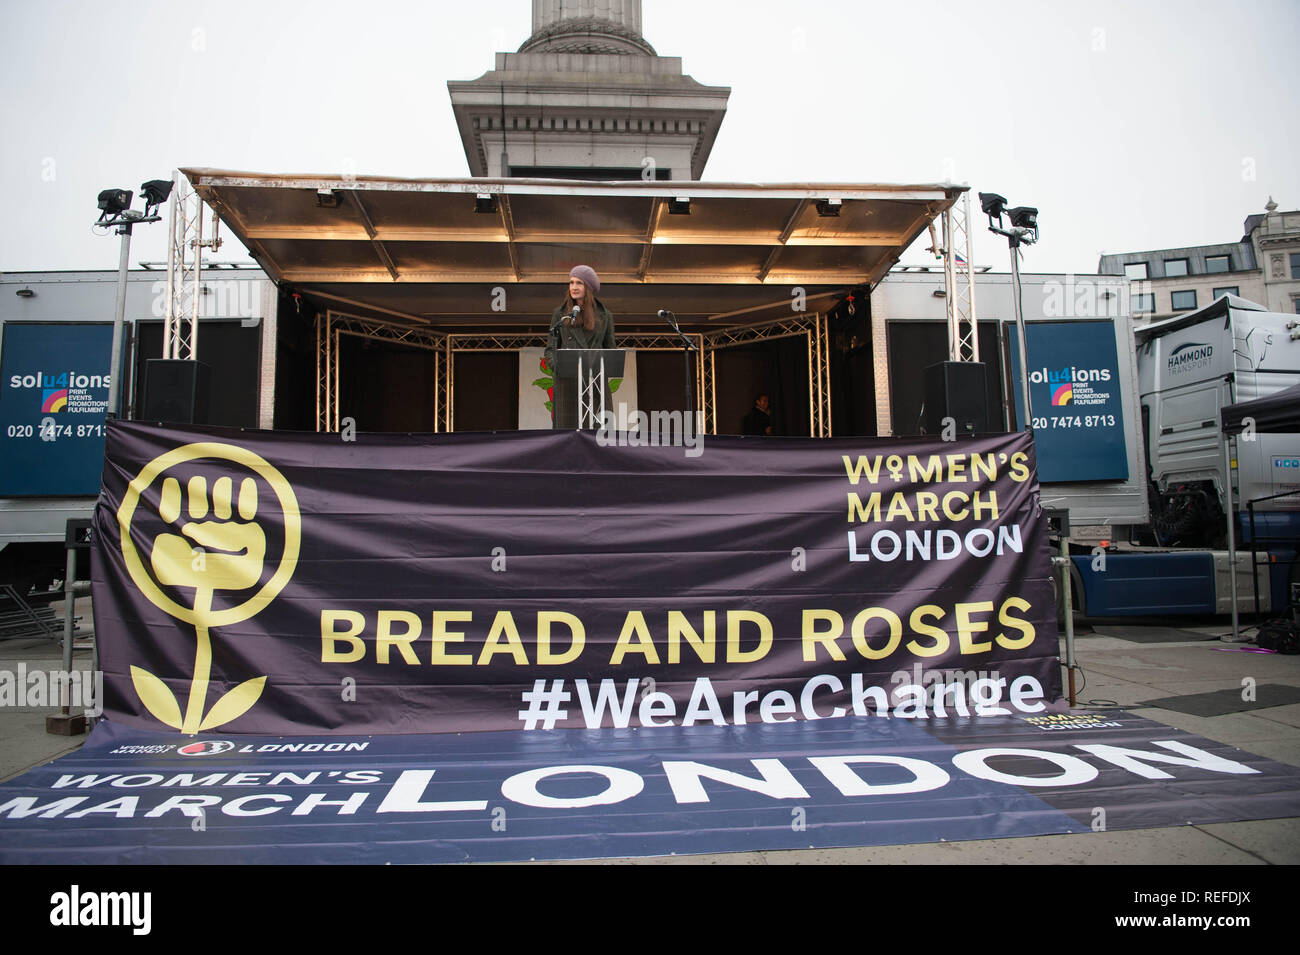 London Women's  March, 19 January 2019. Stock Photo